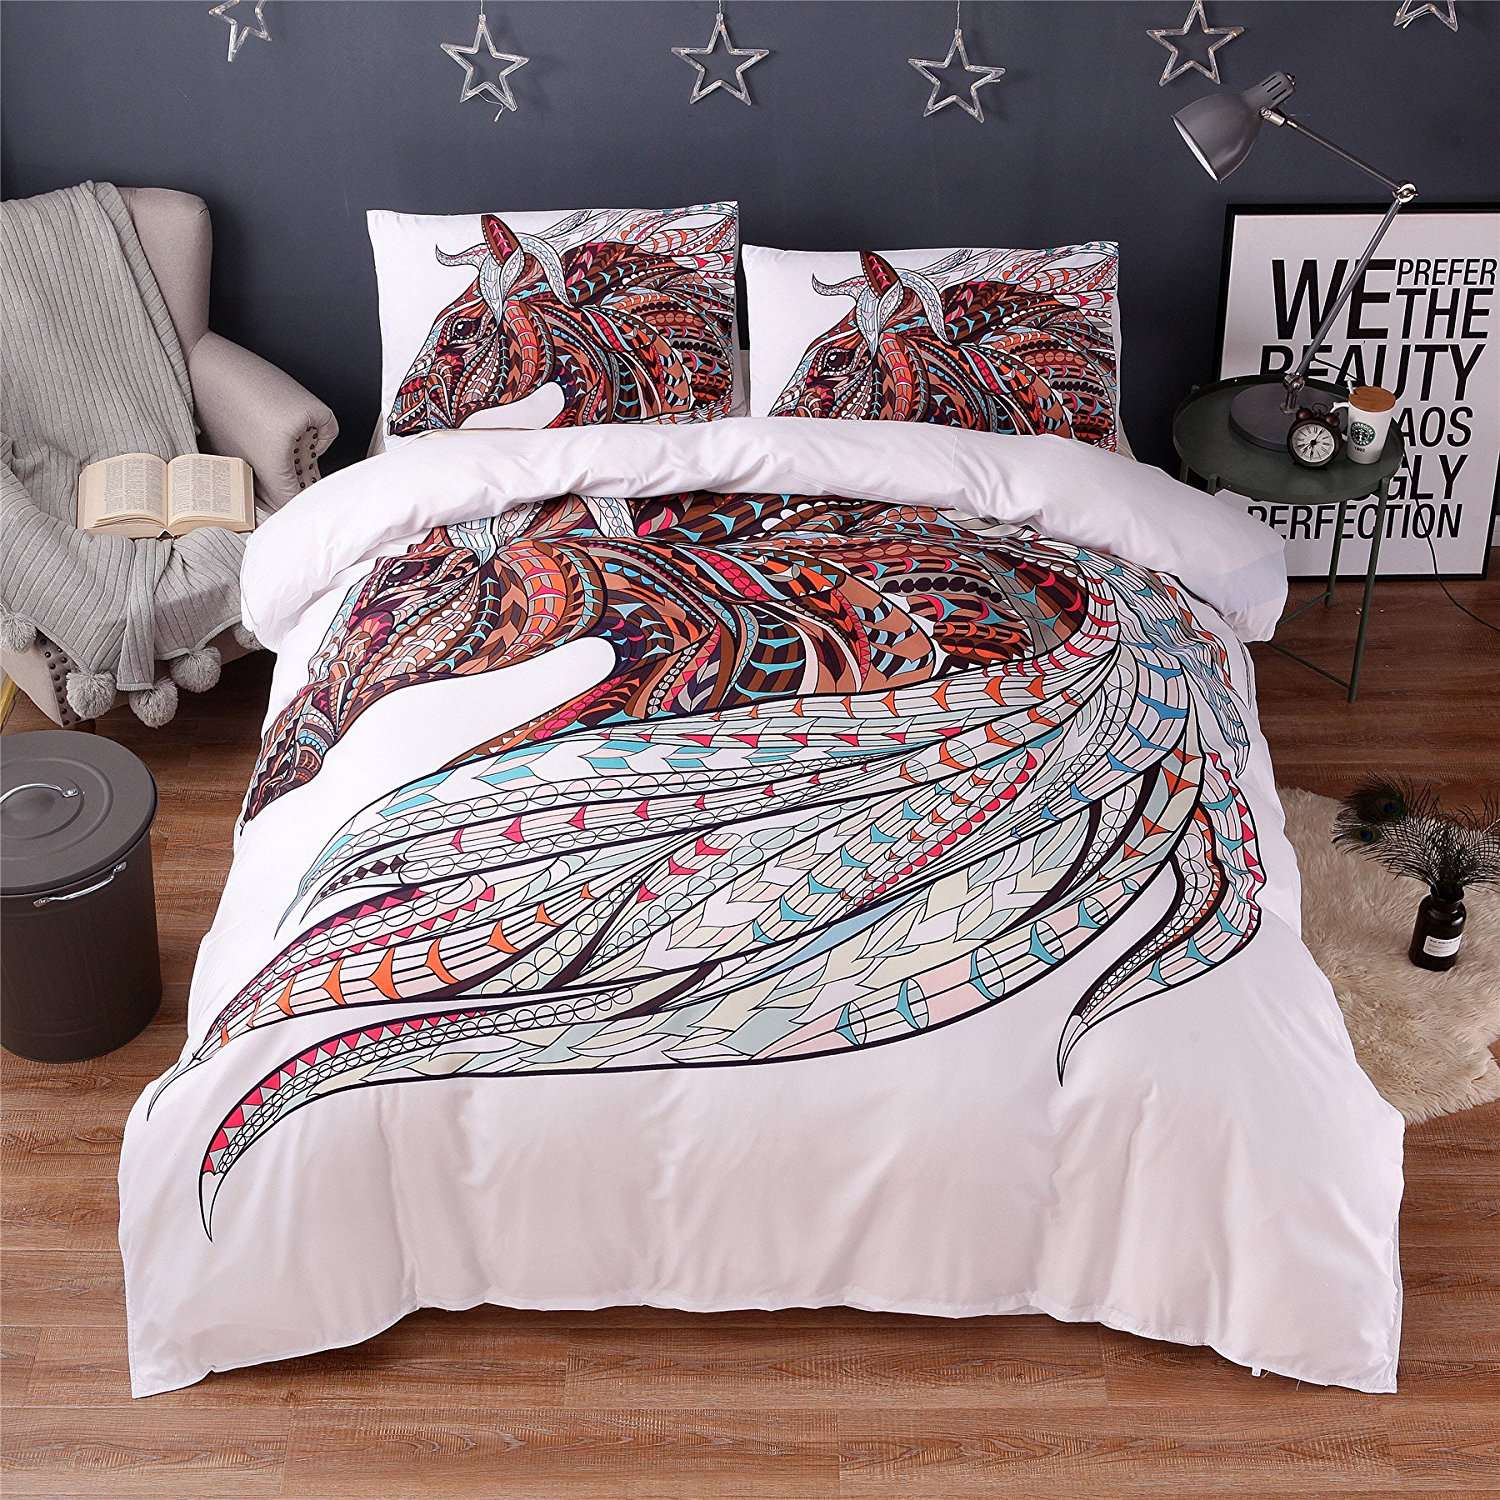 FUYA 2/3 Pieces 3D Horse Bedding Set Bohemia King Duvet Cover with Pillow Case Colorful Printed Bed Set Cover (TWIN 2Pcs)